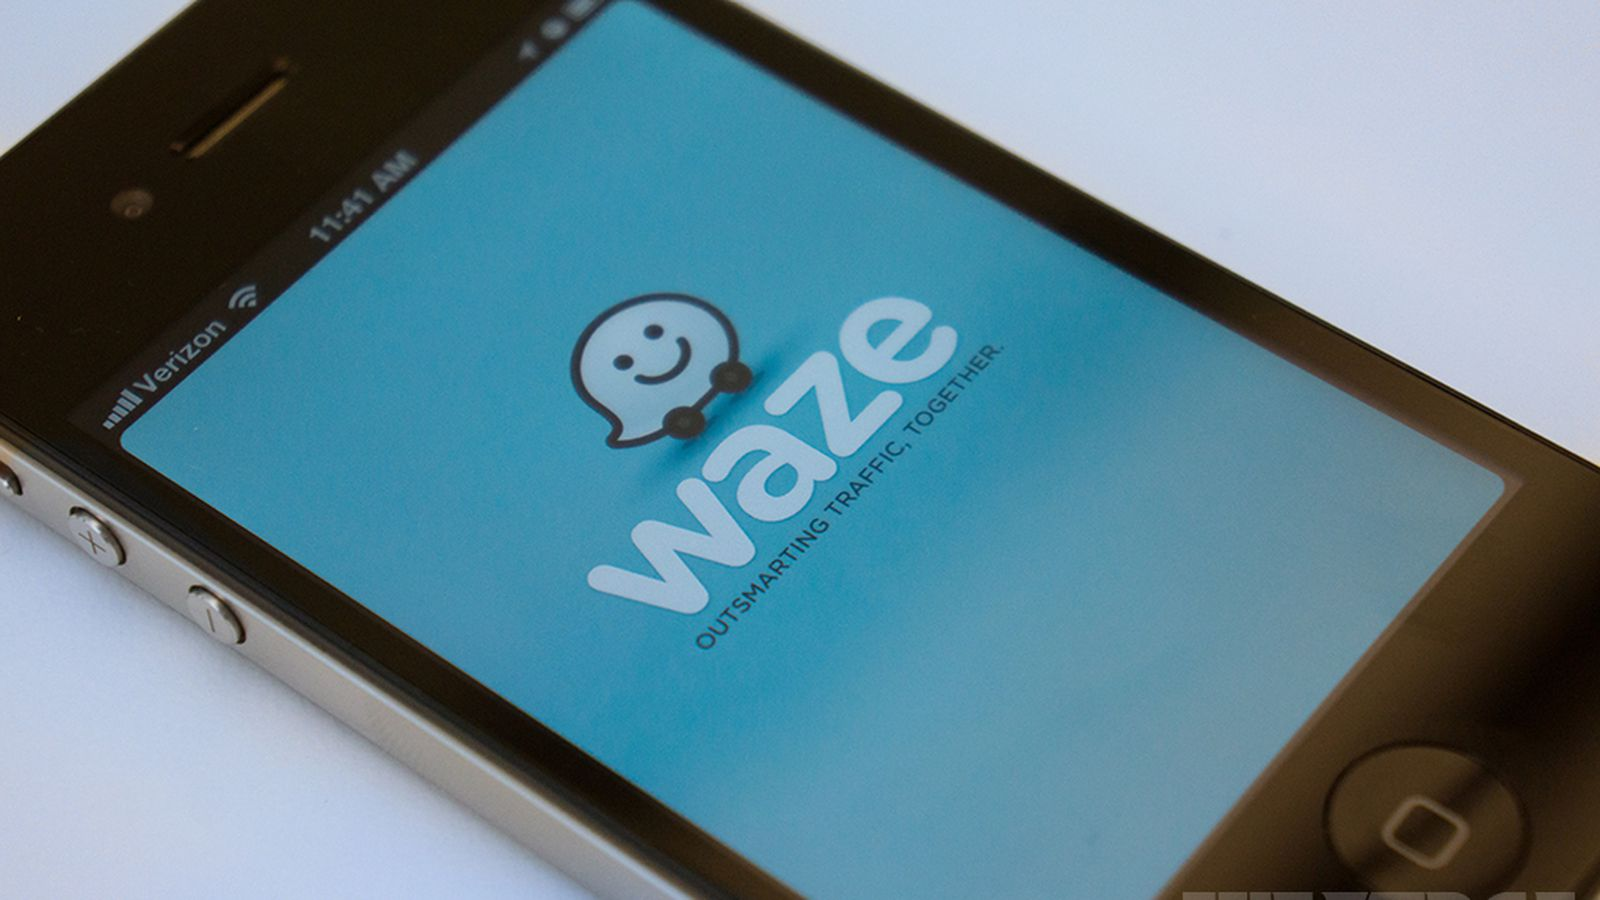 waze s new carpooling service is expanding to more california cities the verge. Black Bedroom Furniture Sets. Home Design Ideas